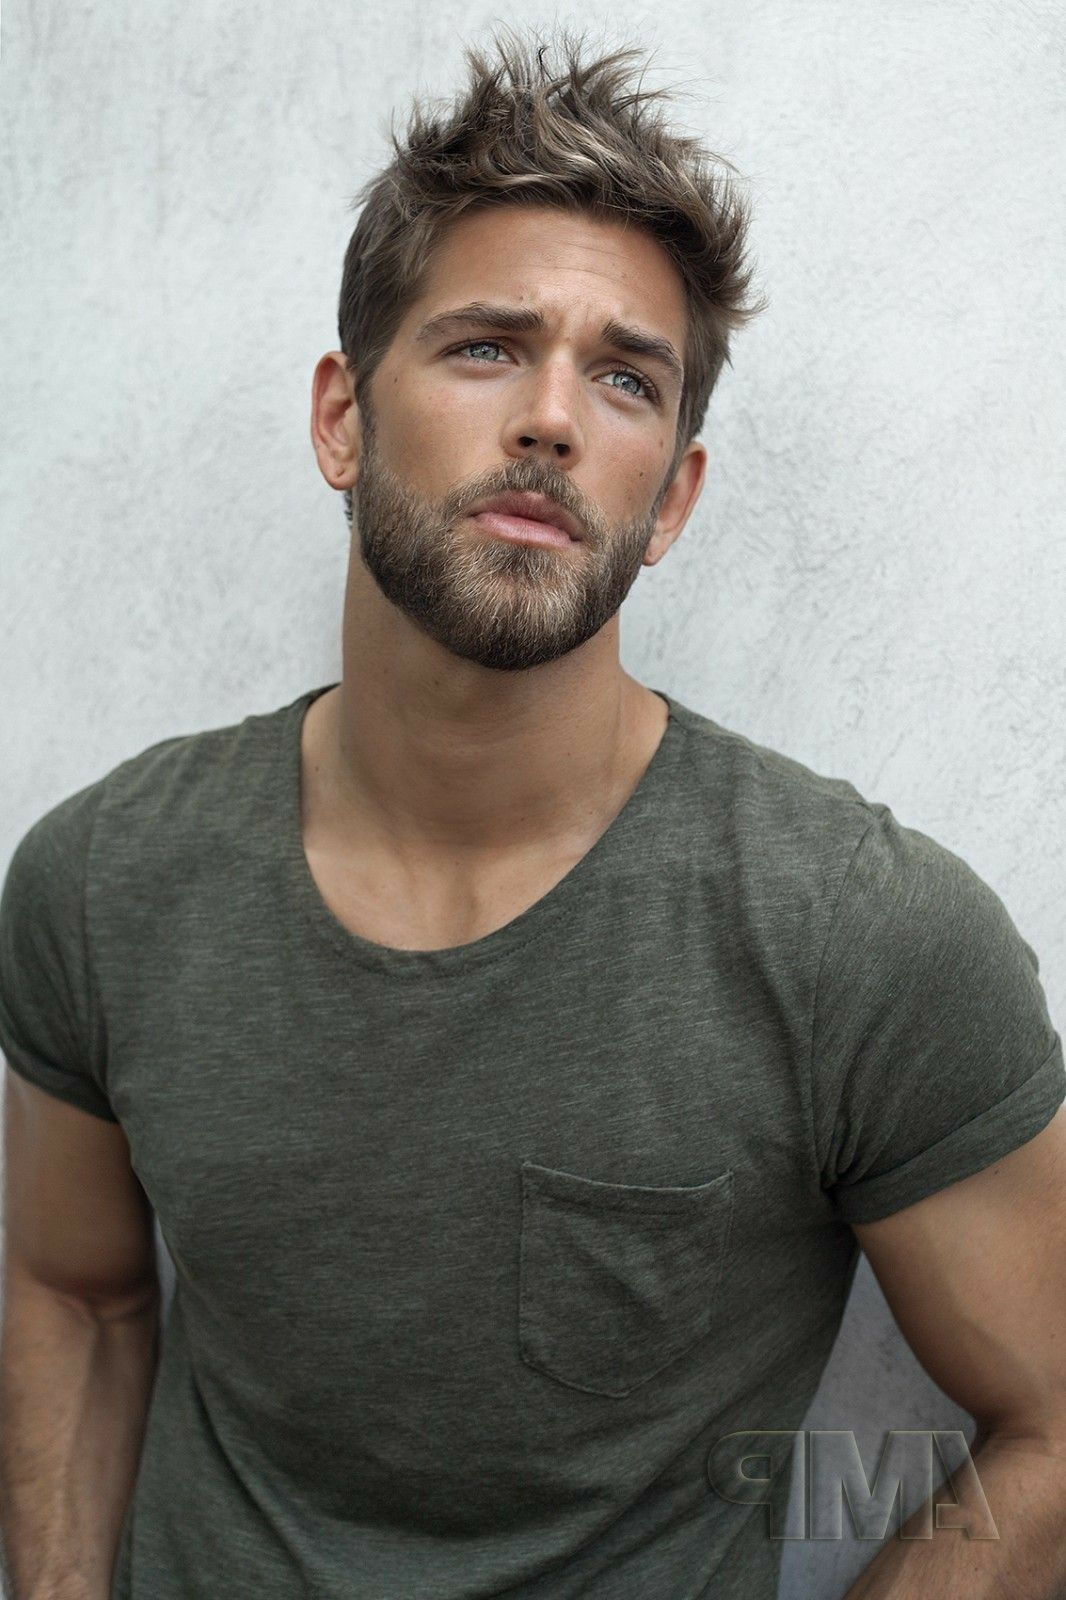 Pin By Billy K On I Would Love To Kiss That Beard Pinterest